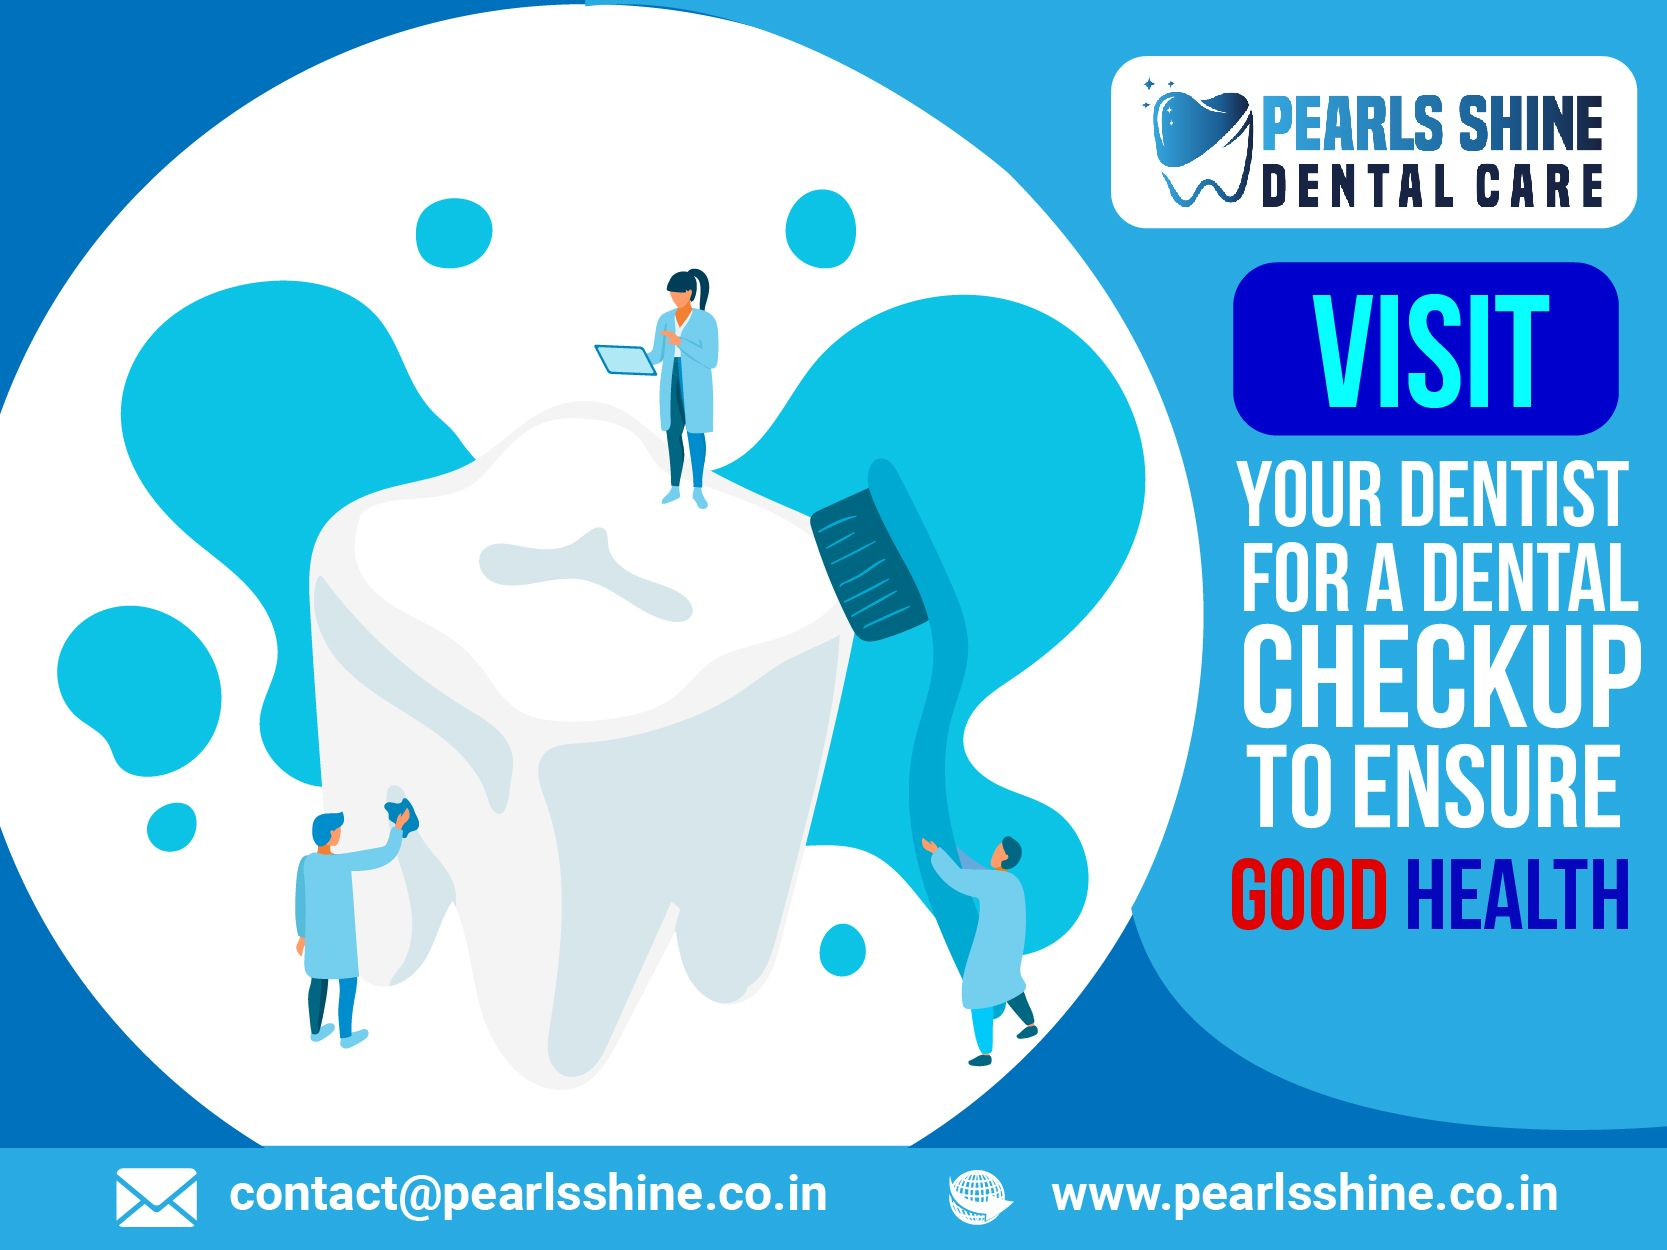 Your Dentist for a Dental Checkup to Ensure Good Health